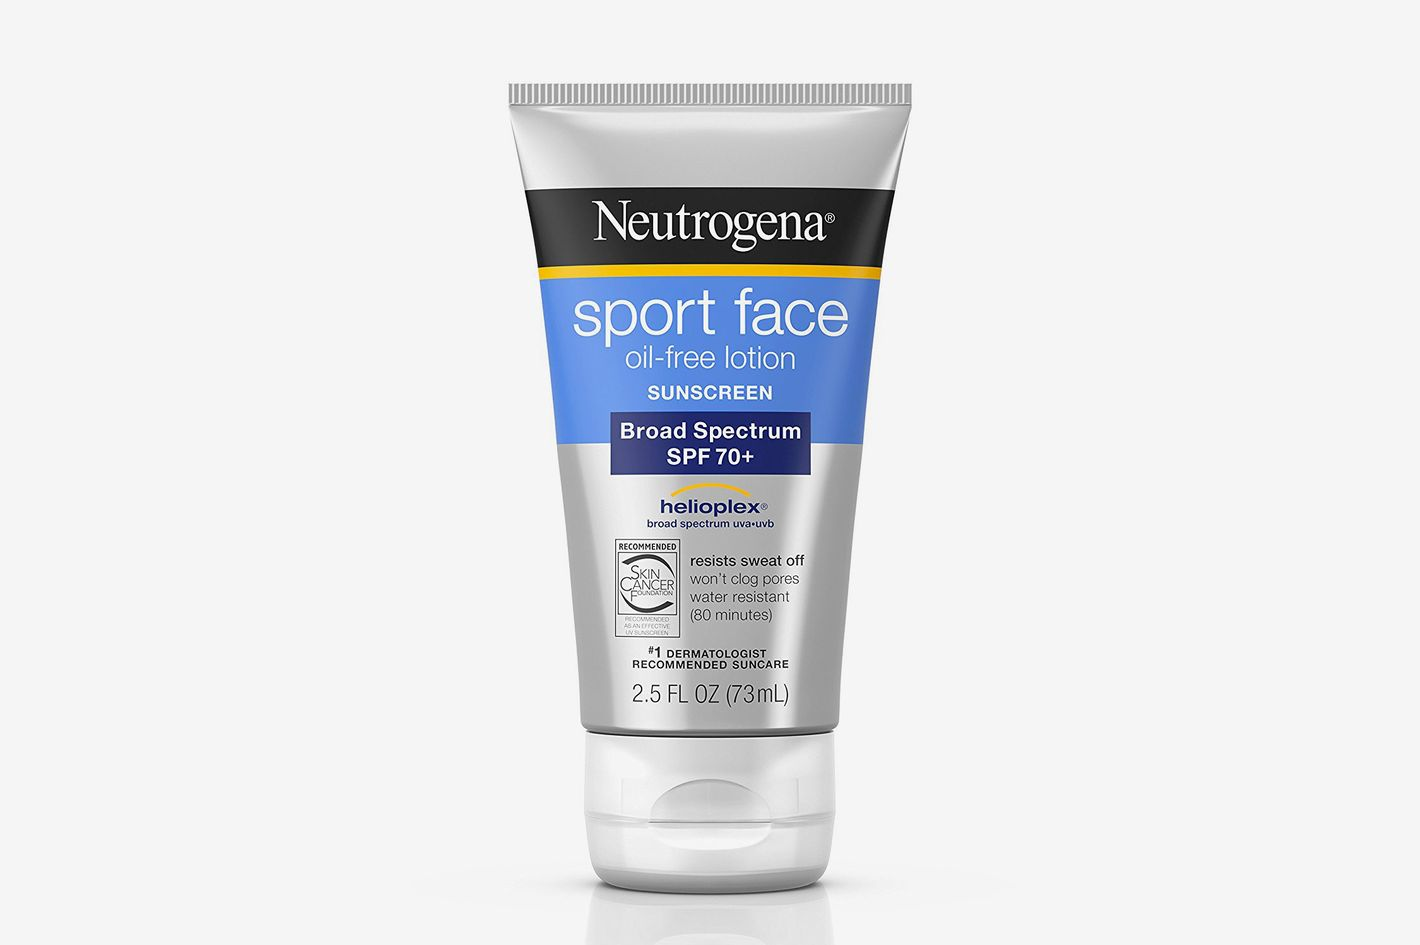 Neutrogena Ultimate Sport Face Oil-Free Lotion Sunscreen, SPF 70+